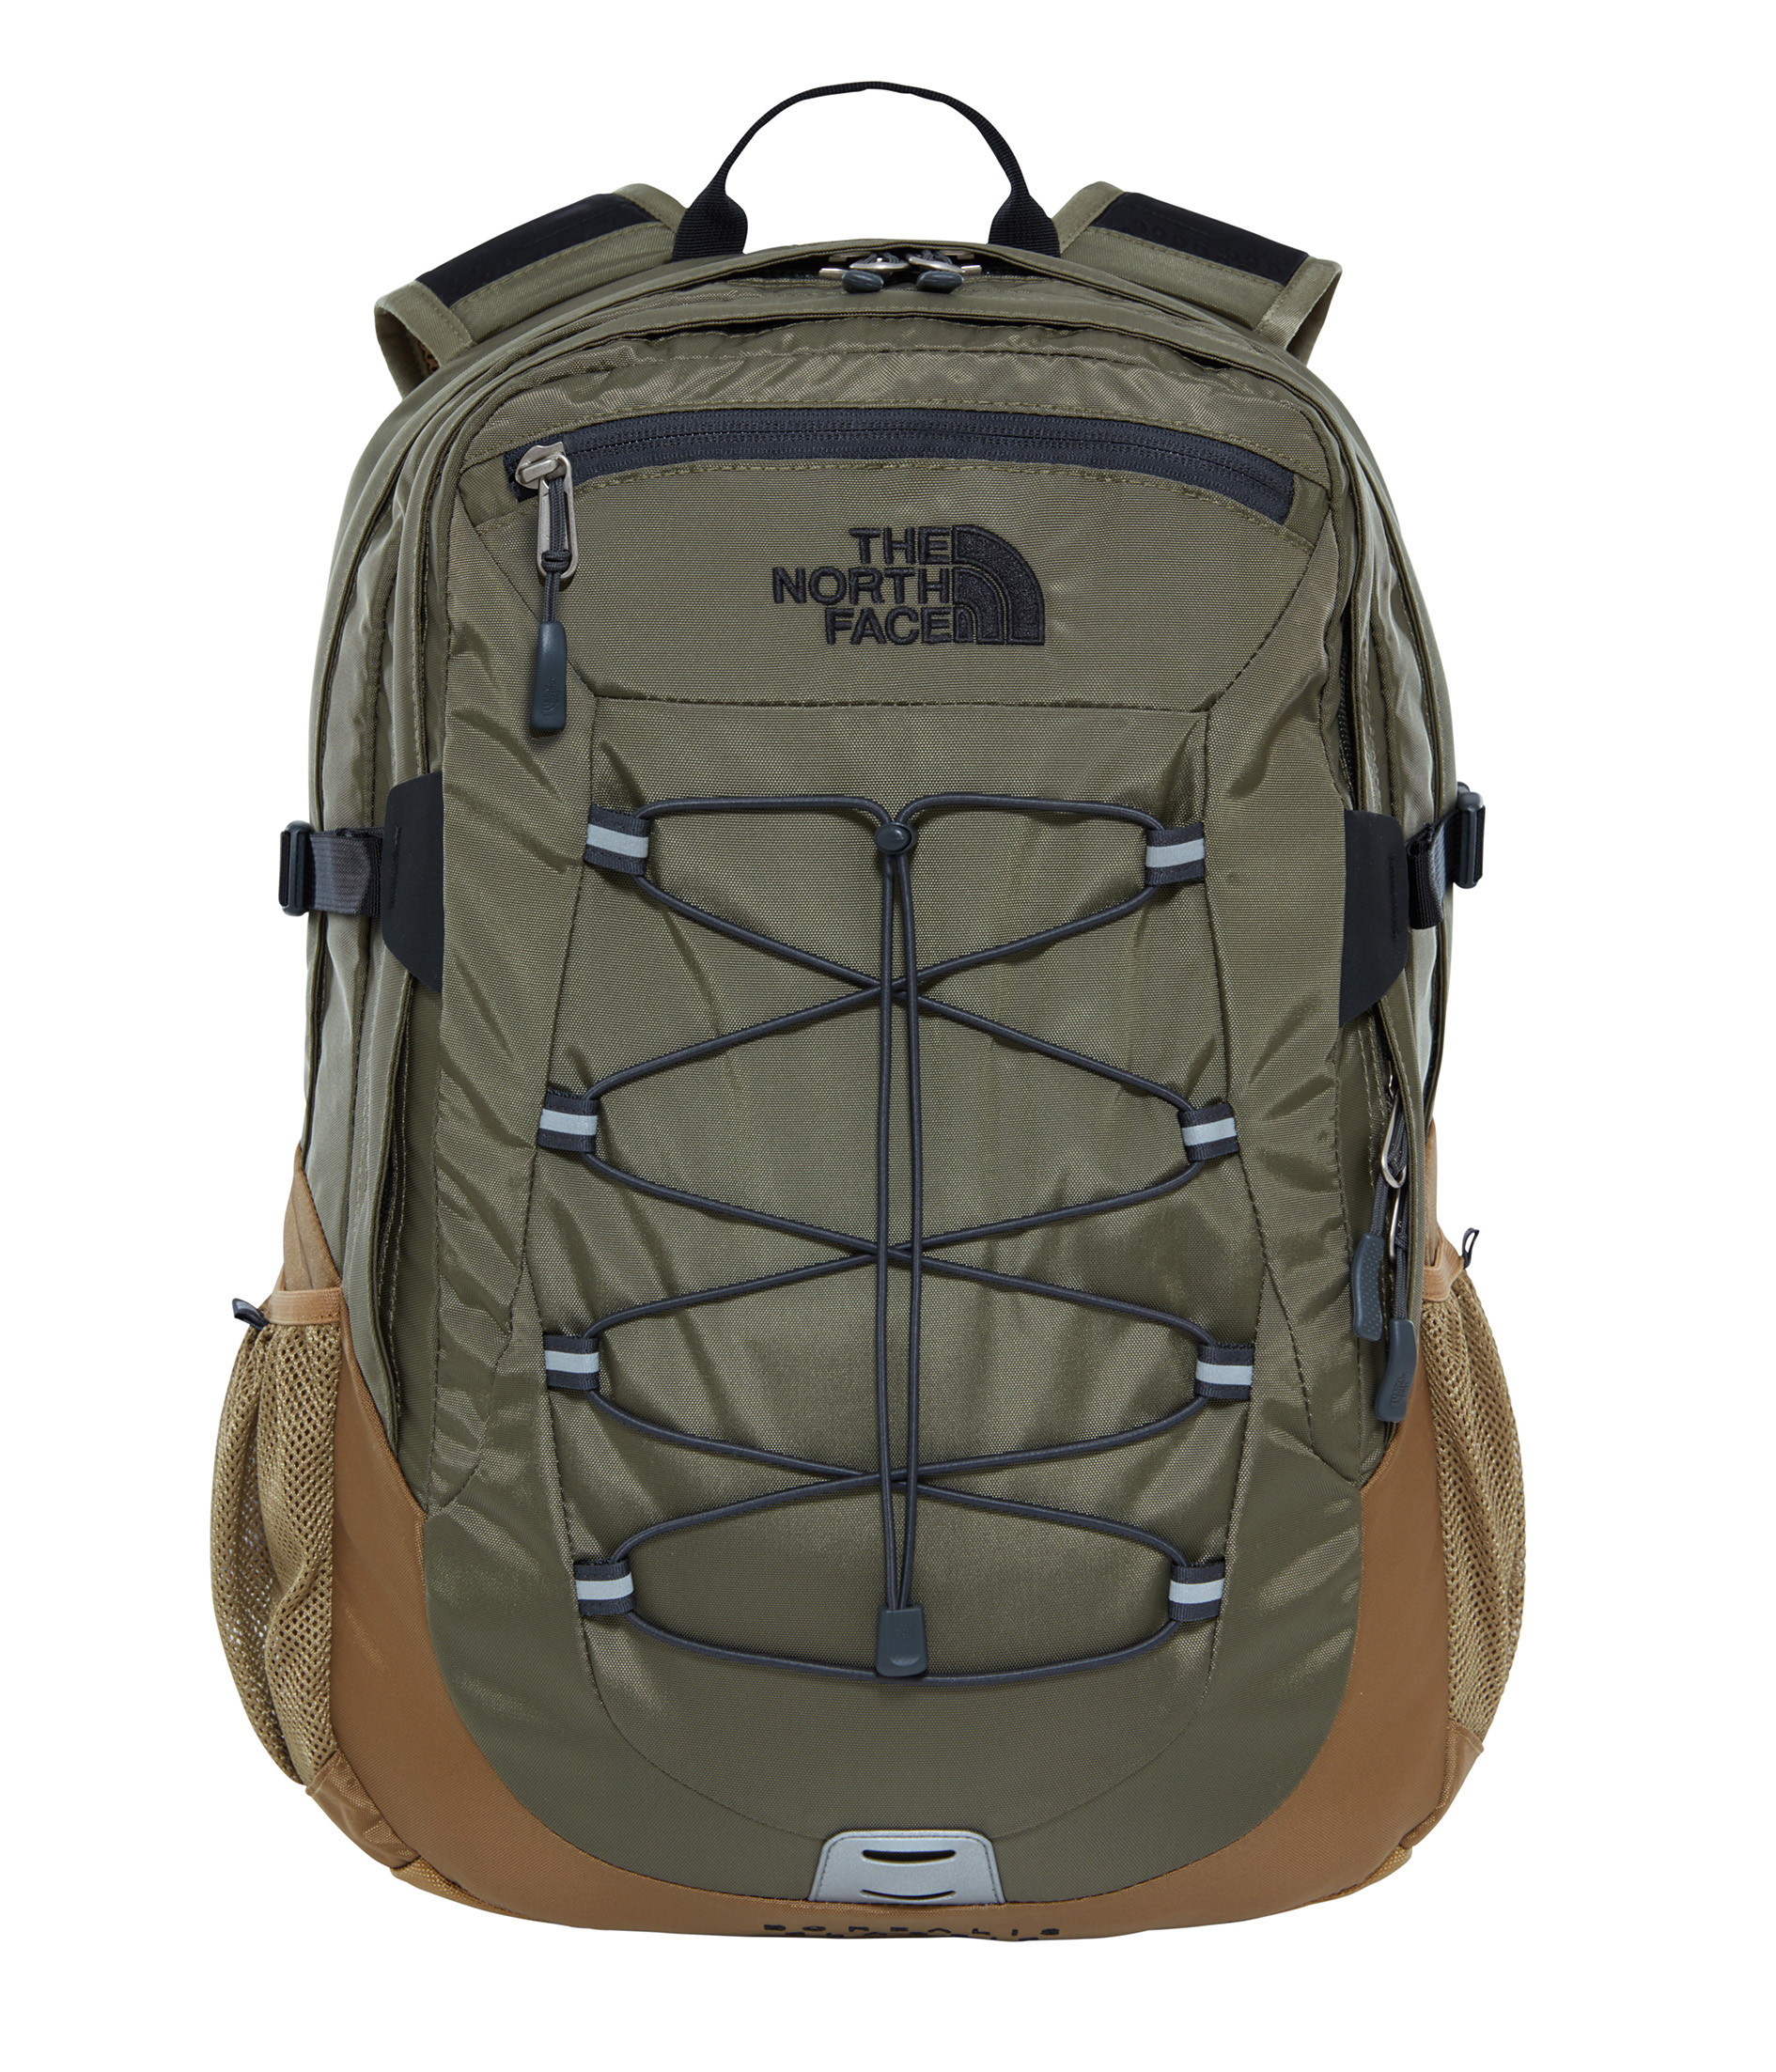 The North Face Borealis Classic hátizsák - 2017-es modell